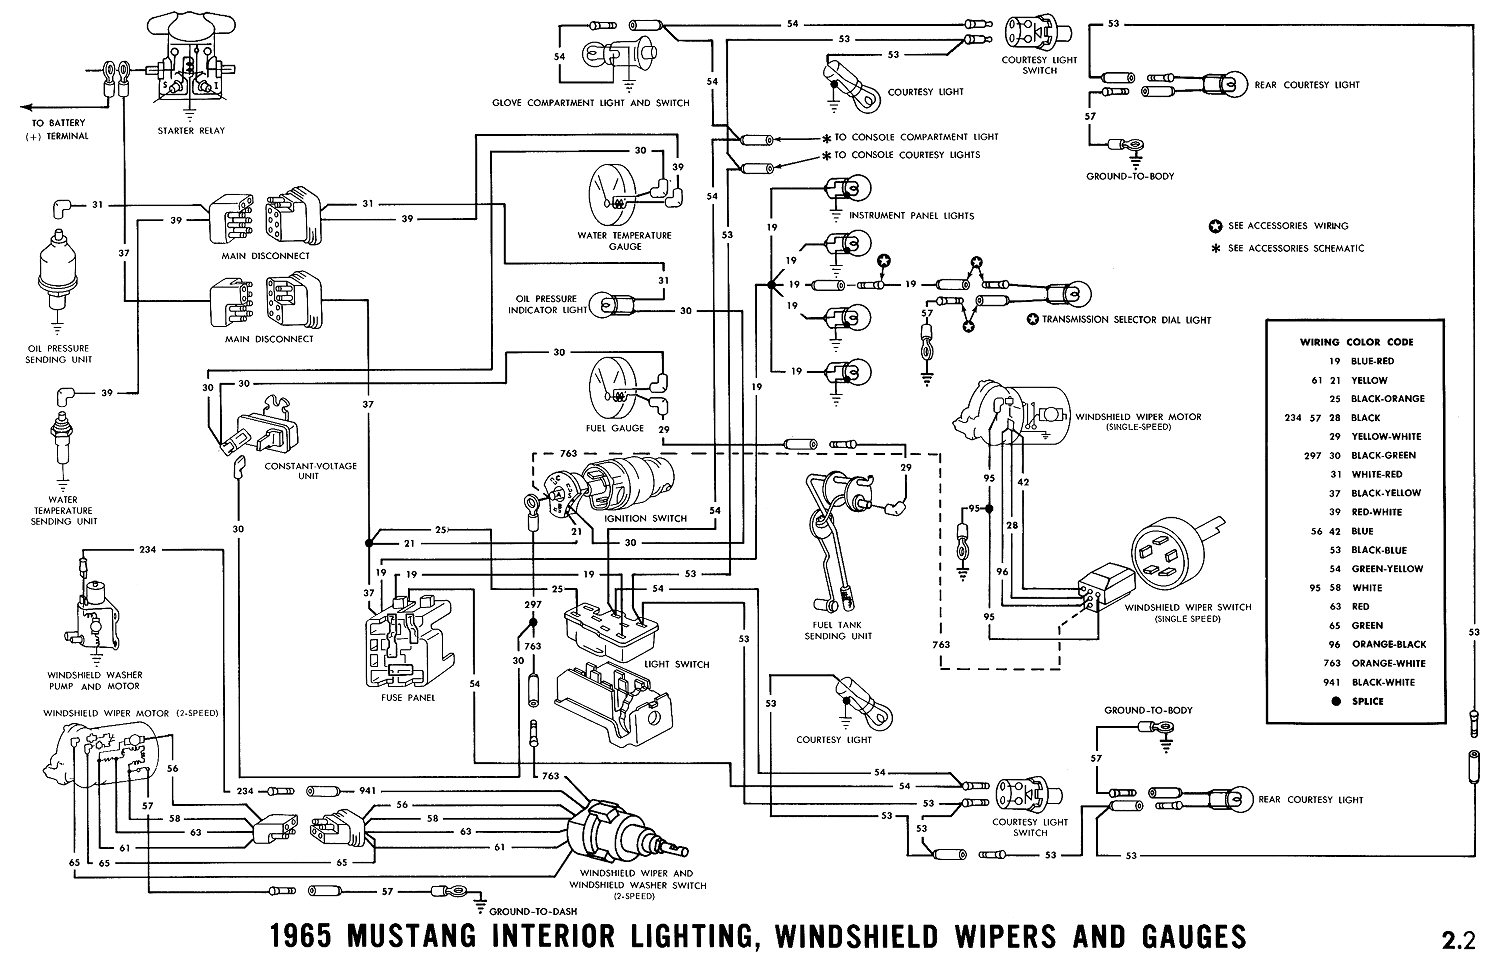 1999 Lexus Es300 Fuse Box Diagram Wiring Library 1965 Mustang Diagrams Average Joe Restoration 94 Radio Car Radios